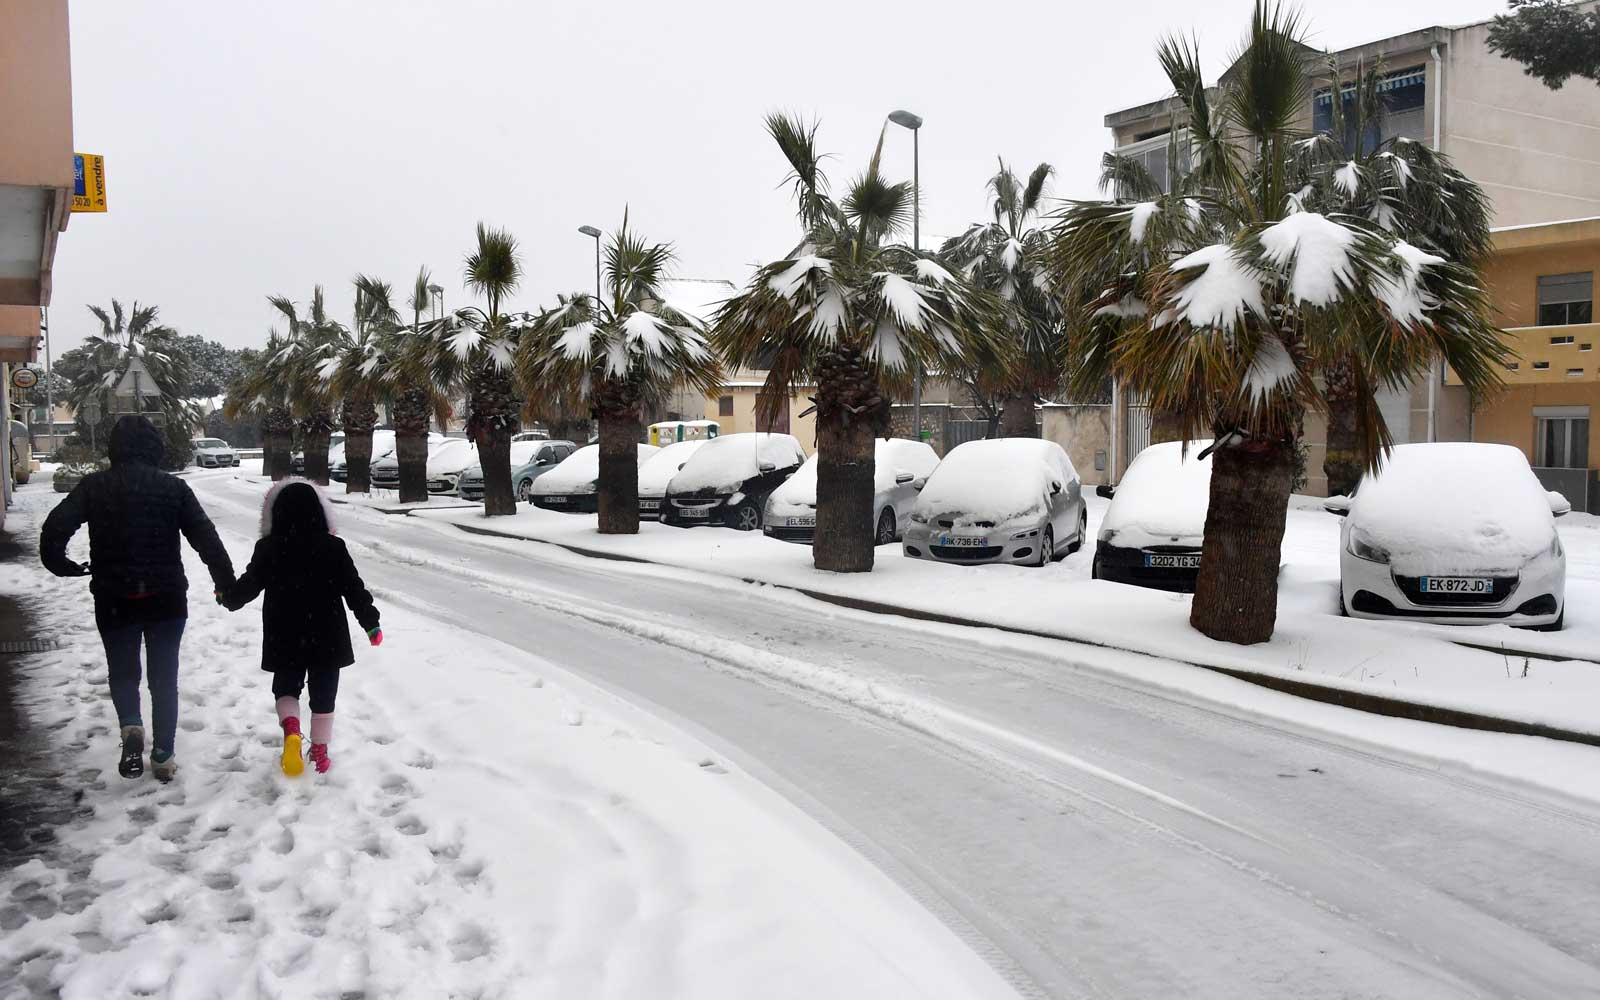 A woman walks with a child down a snow-covered road in Palavas-les-Flots, in the south of France, on February 28, 2018.